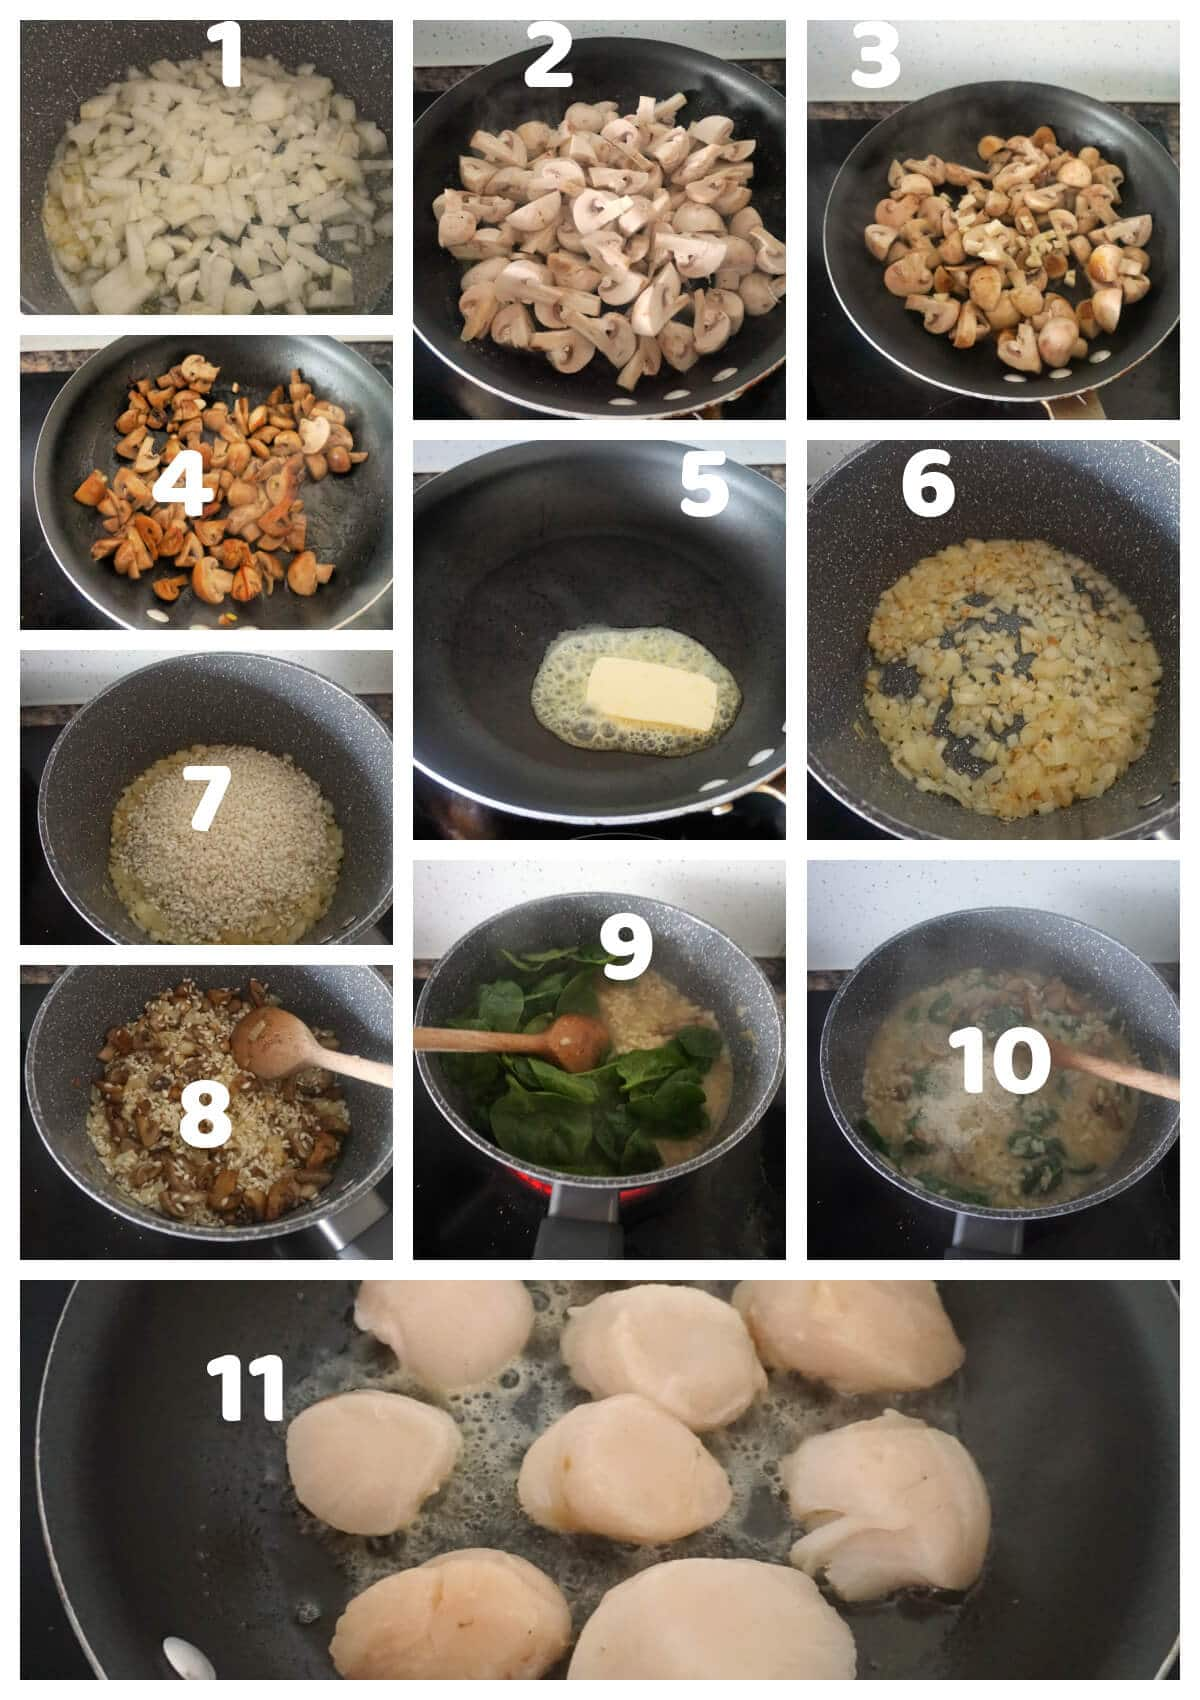 Collage of 11 pictures to show how to make mushroom risotto with seared scallops